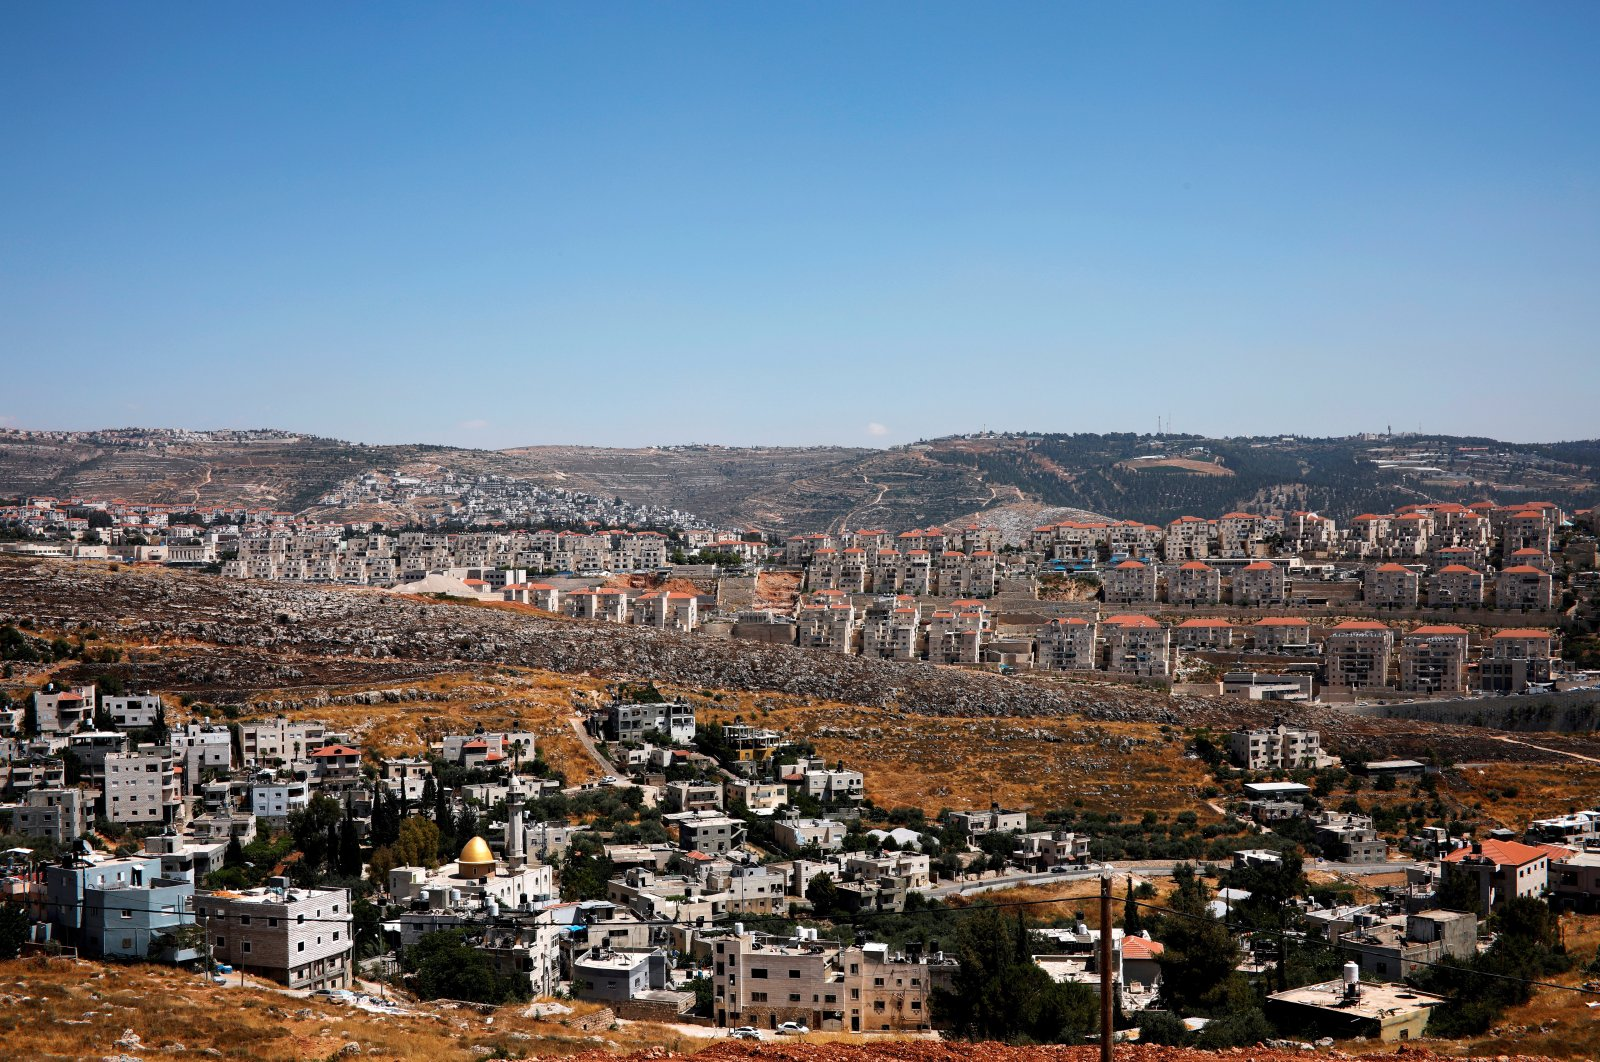 A general view shows Palestinian houses in the village of Wadi Fukin as the Israeli settlement of Beitar Illit is seen in the background, in the occupied West Bank, June, 19, 2019. (Reuters Photo)